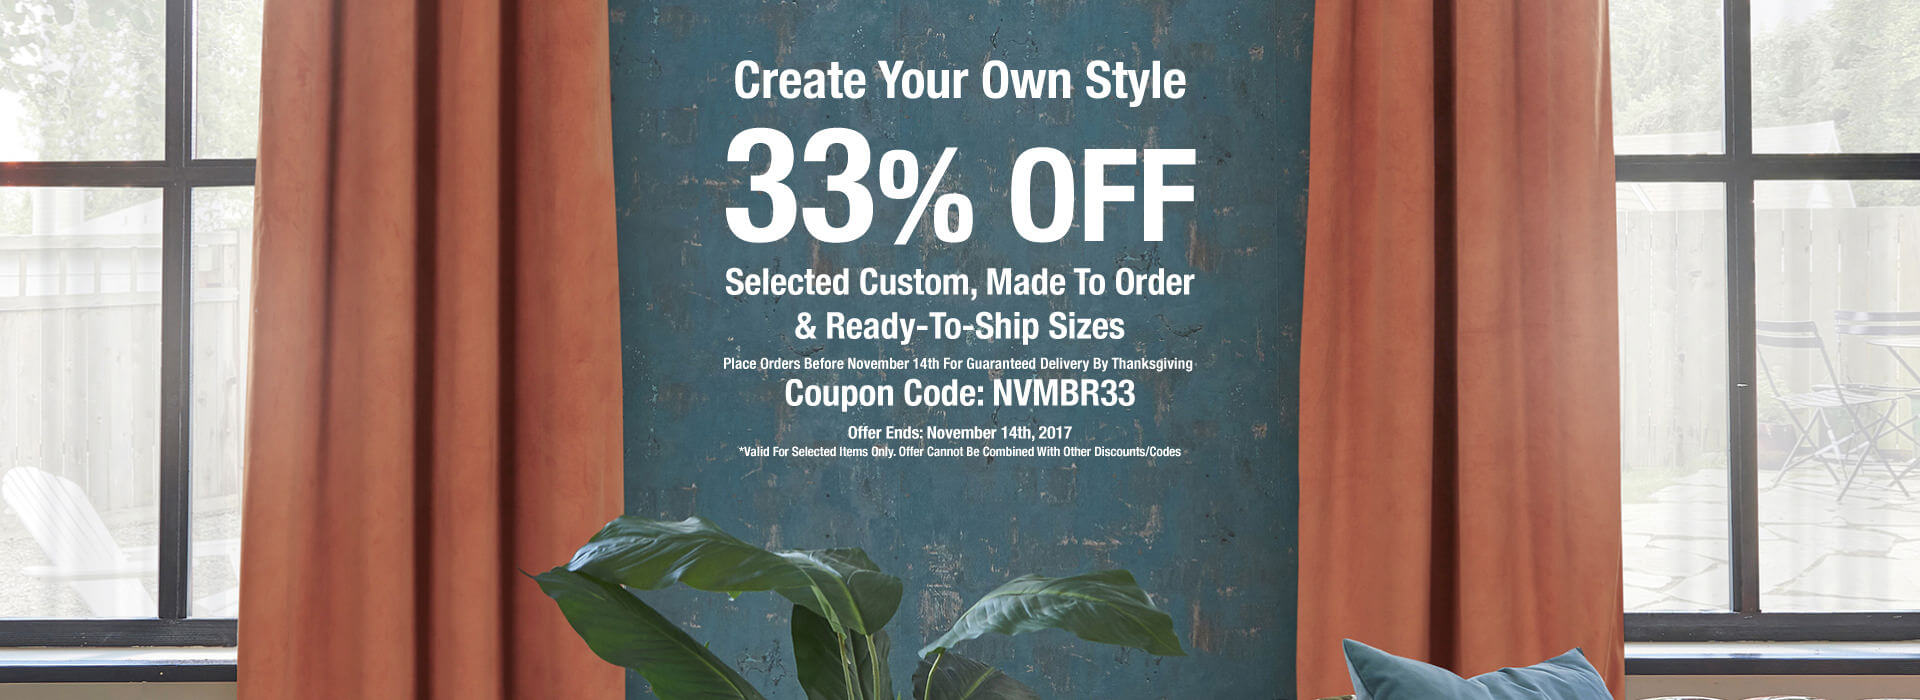 Fall Sale! Take 55% Off On Selected Items